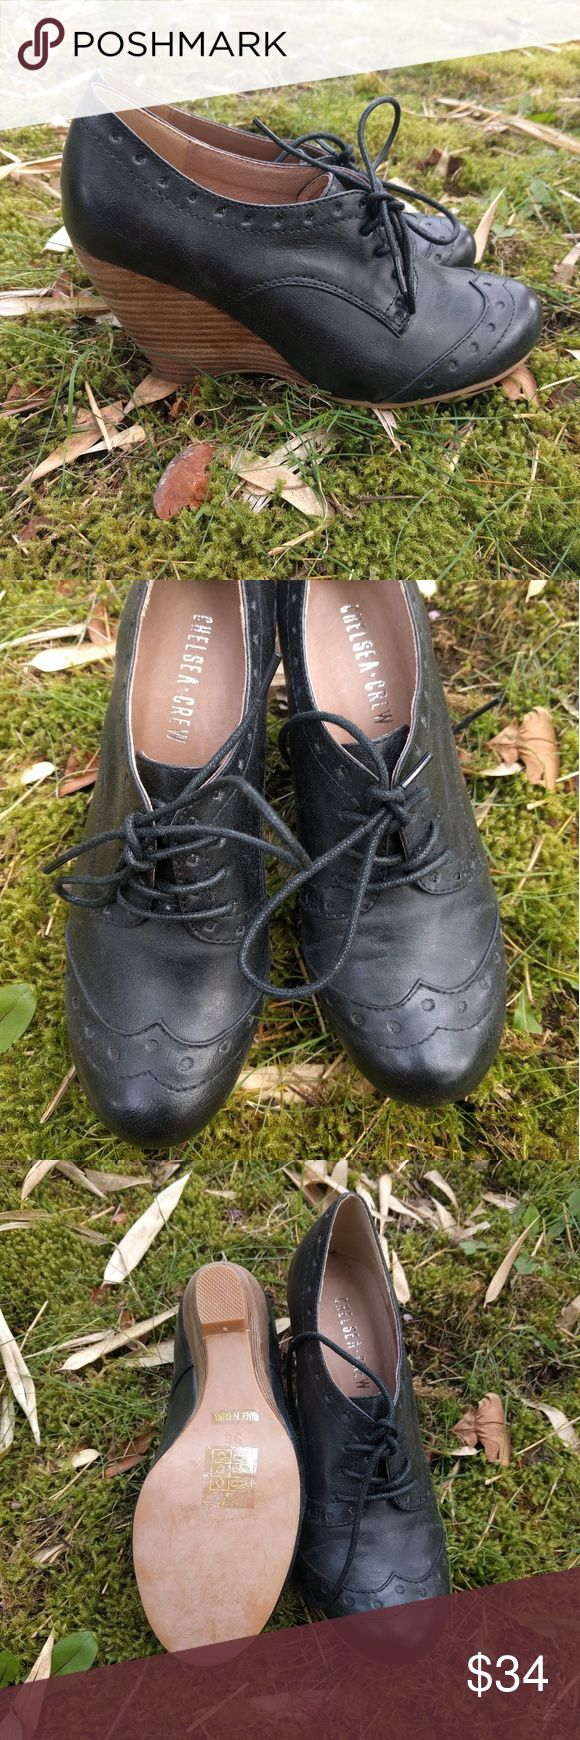 """Chelsea Crew Claire Oxford Wedges Black lace-up shoes with 4"""" wedge heel and a cute little wingtip design.  BNWOT! Chelsea Crew Shoes Wedges"""